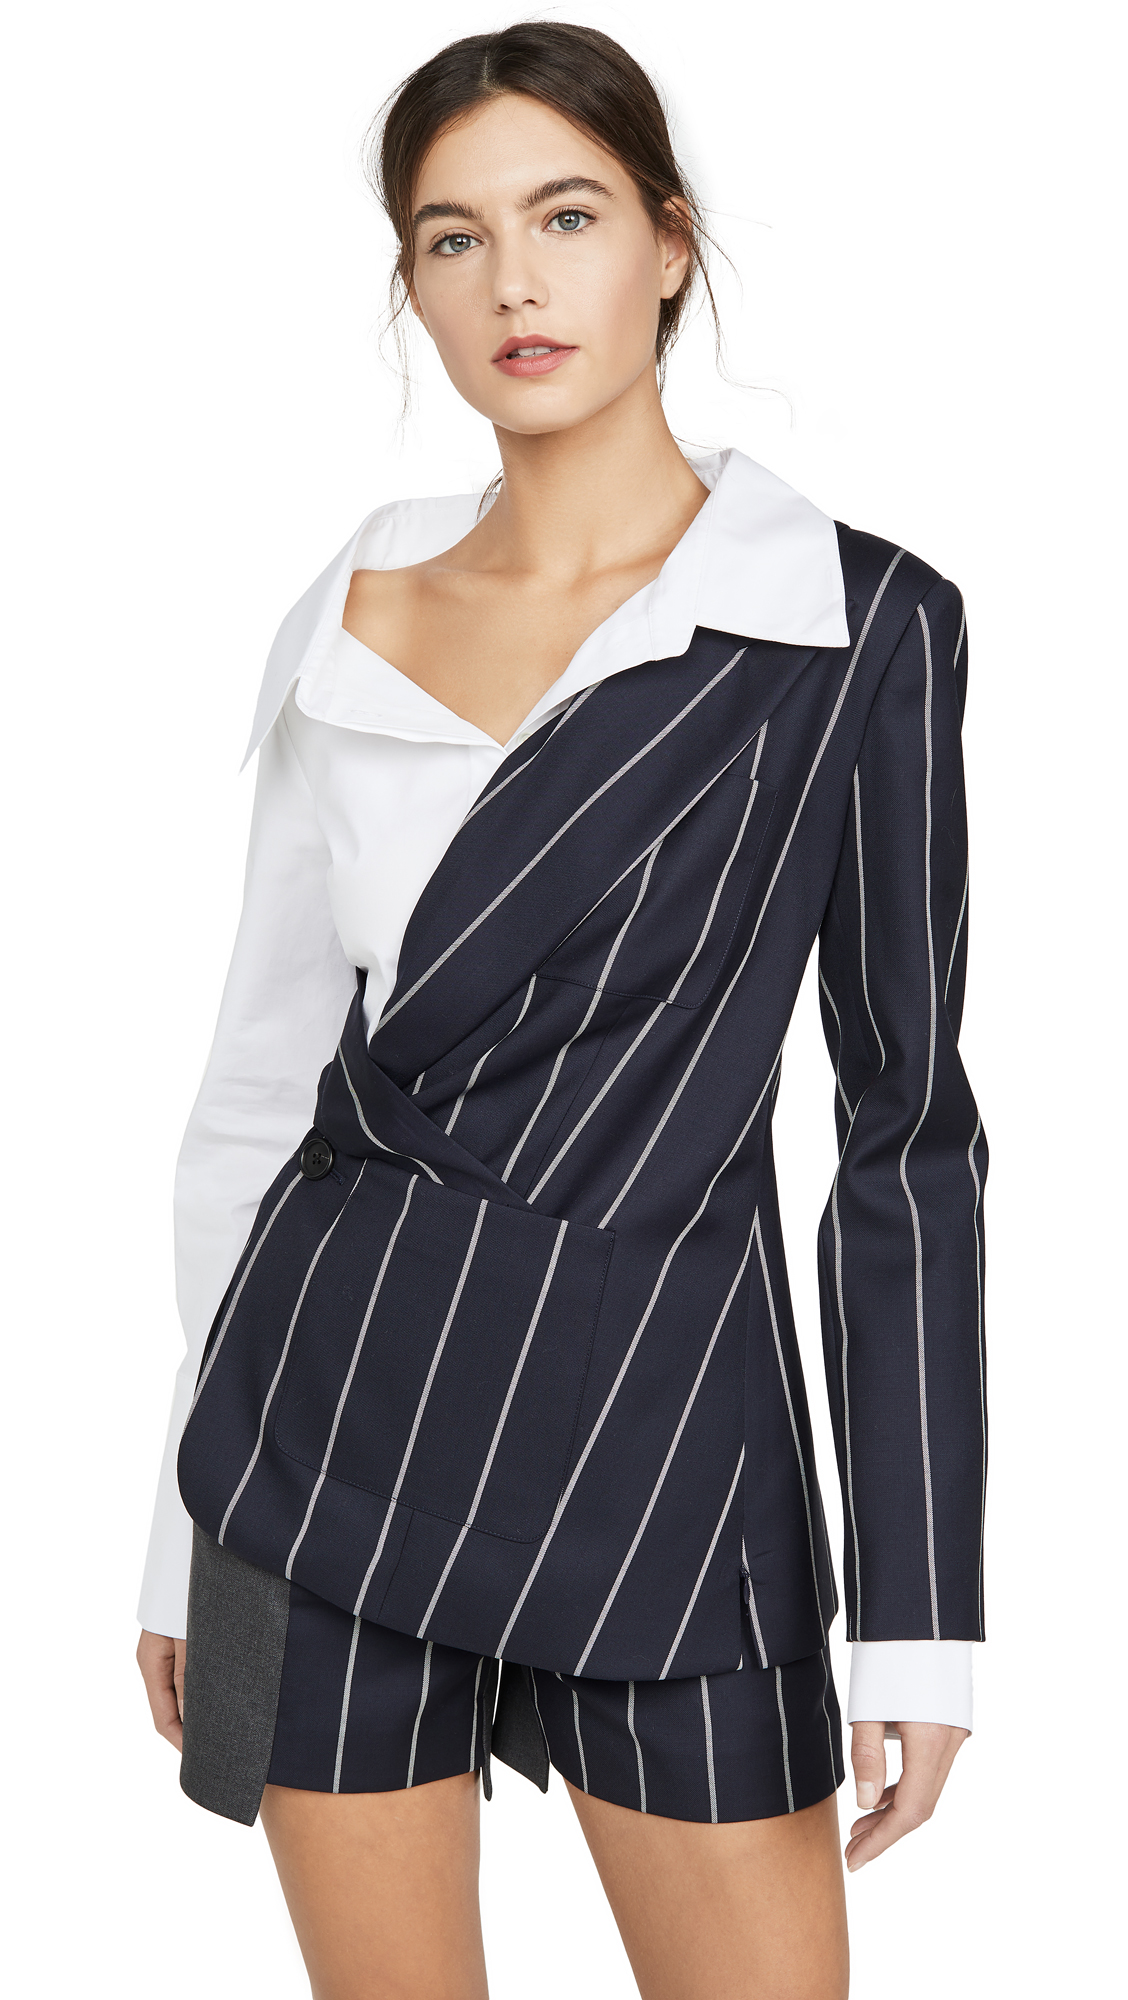 Monse Pinstripe Blazer Poplin Combo Top - 40% Off Sale